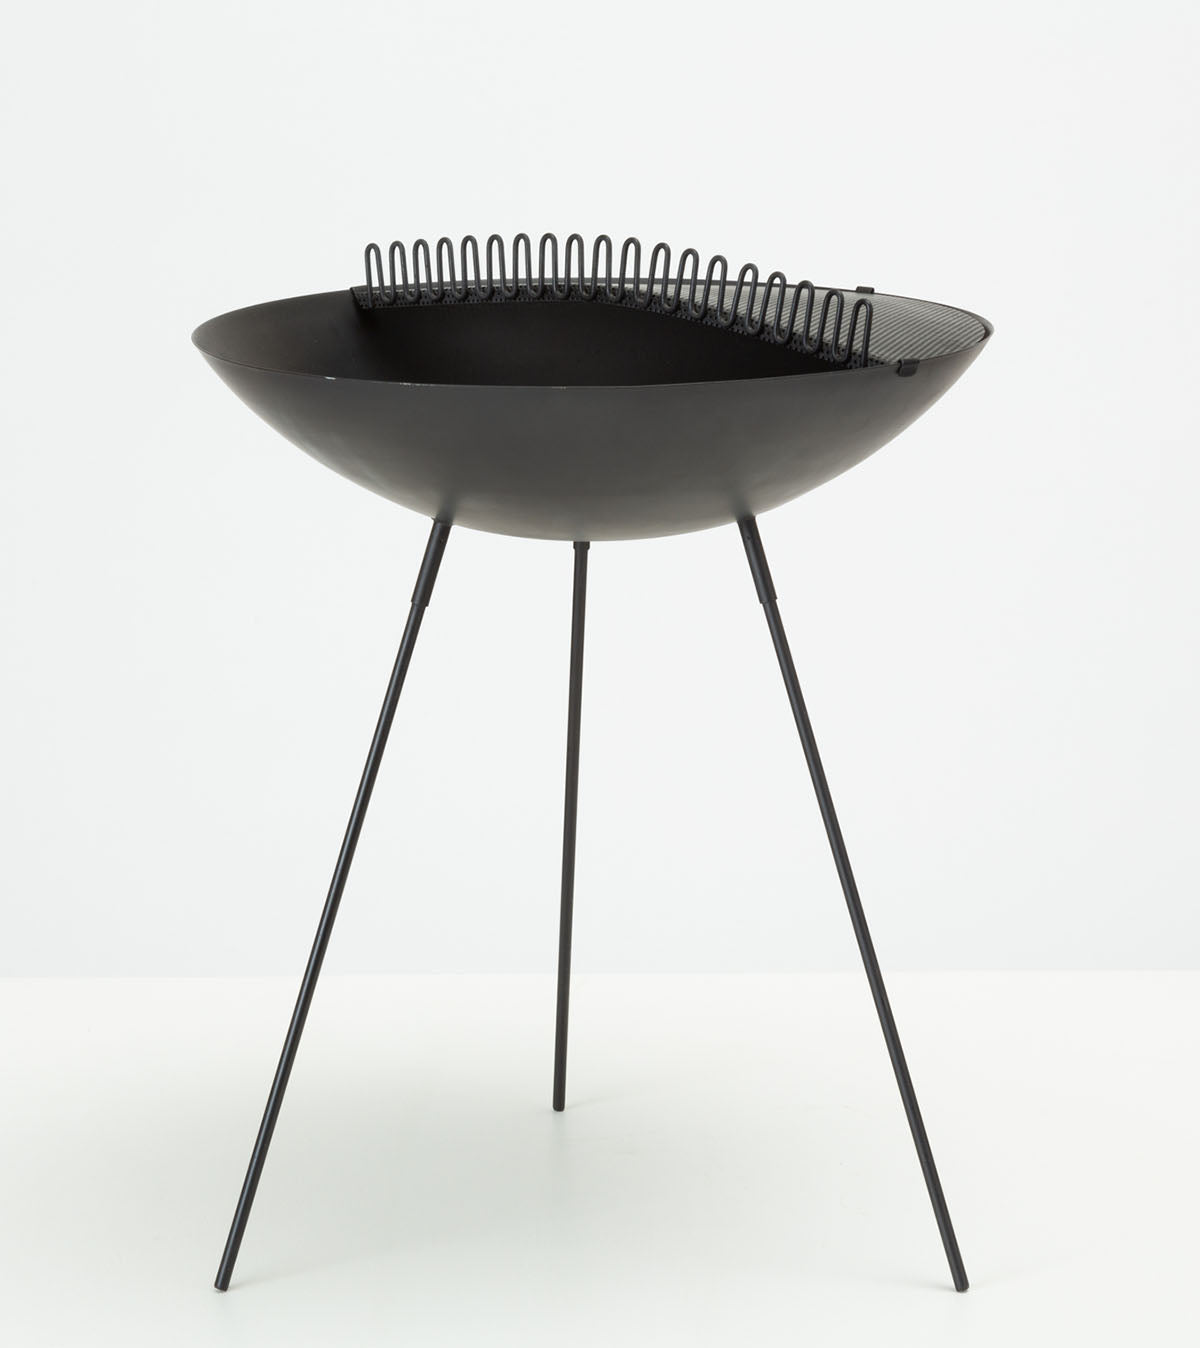 Gross Wood & Co Tripod Ashtray